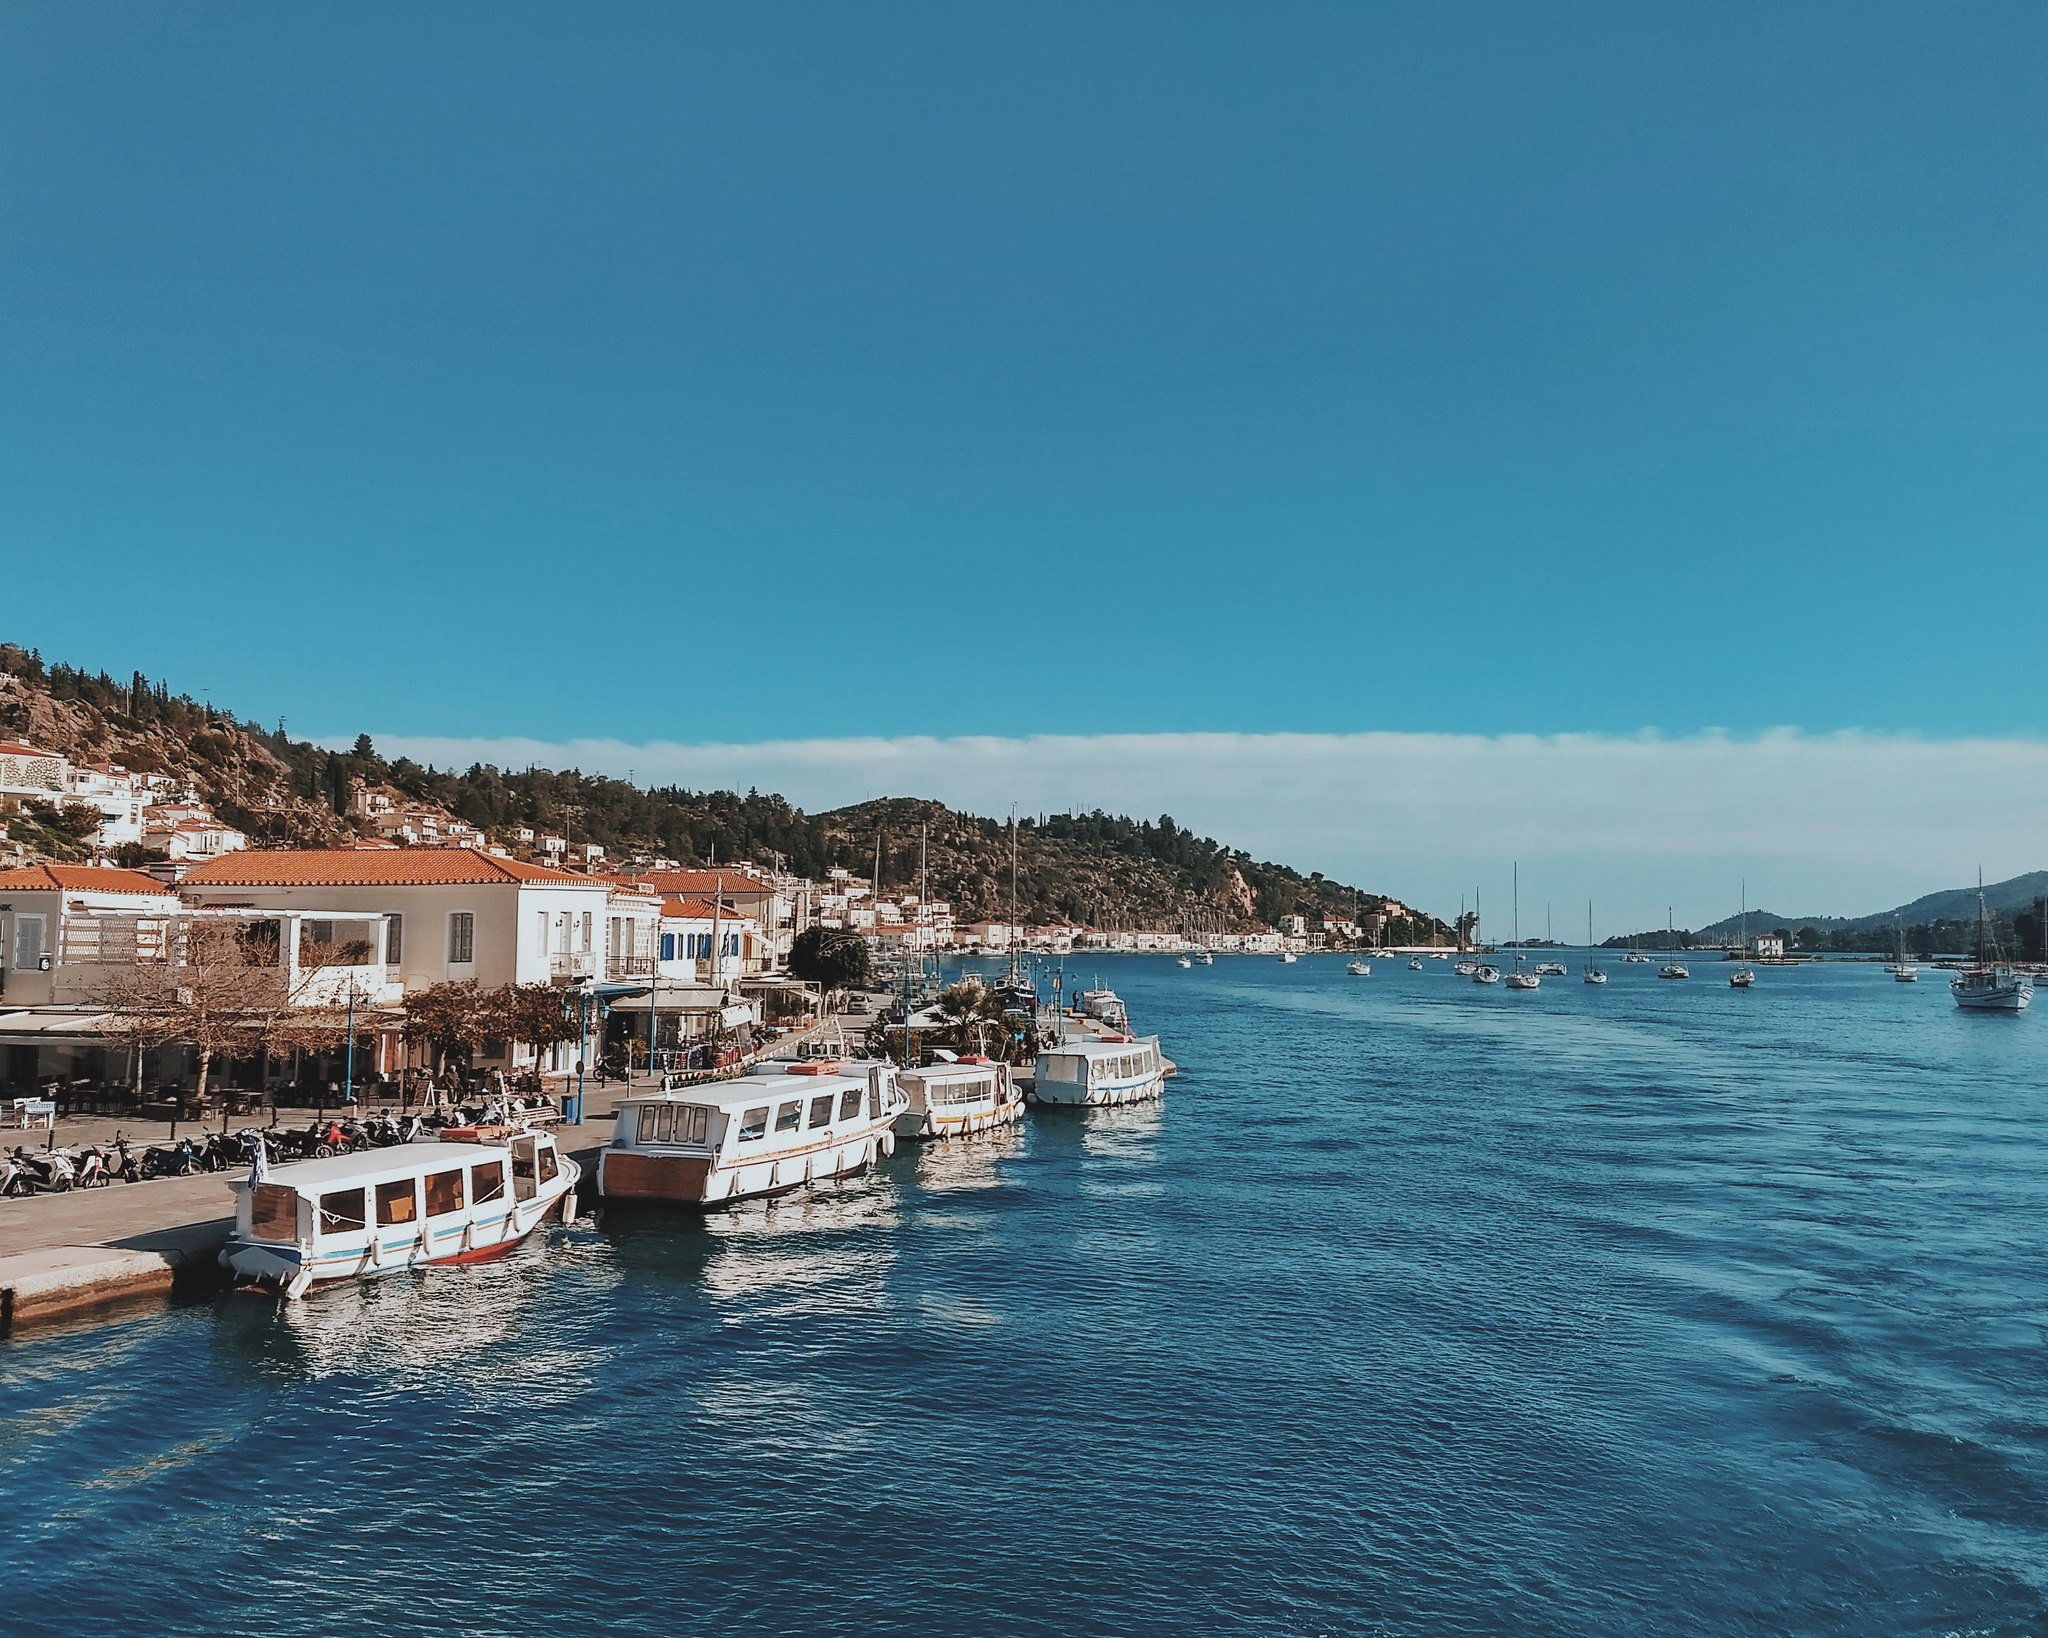 Hydra, Poros and Aegina Day Cruise from Athens